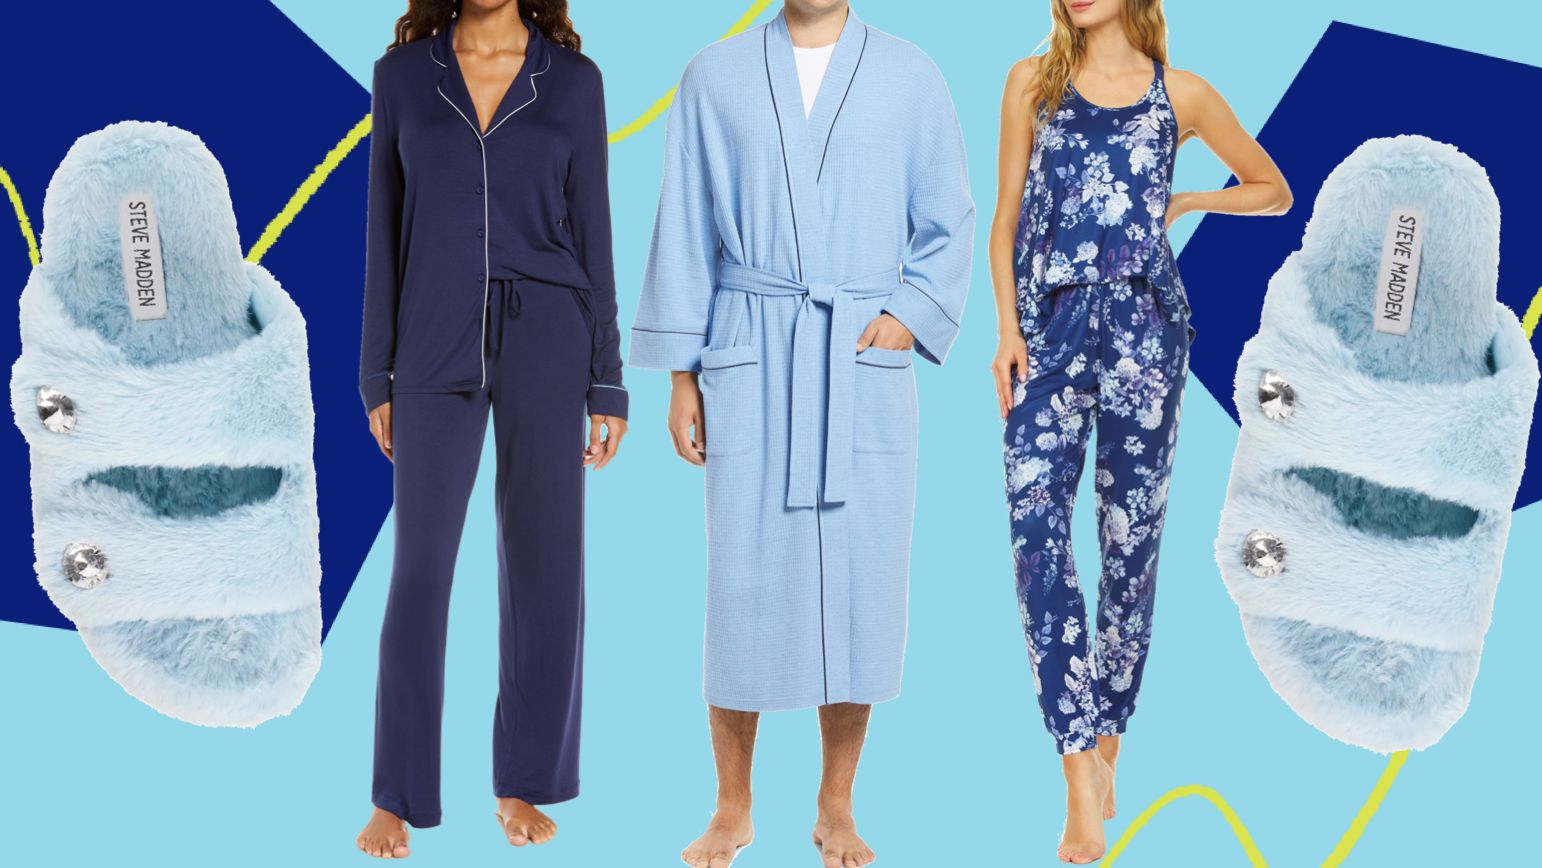 The Comfiest Loungewear You Can Find At Nordstrom's Anniversary Sale